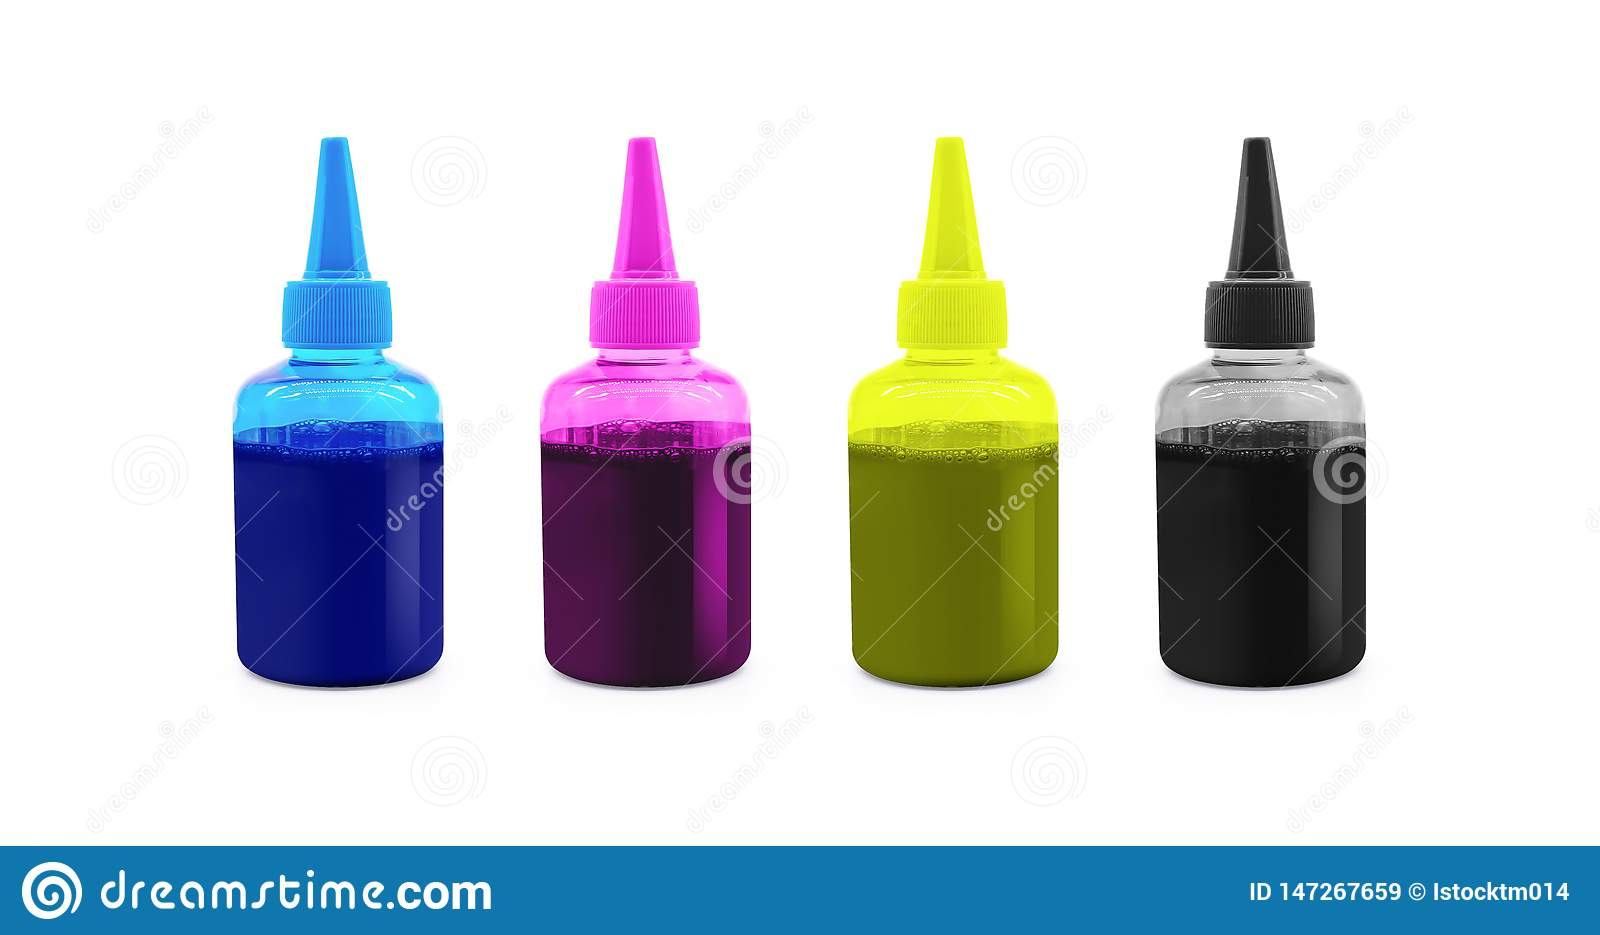 CMYK ink bottle for printer machine on isolated background with clipping path